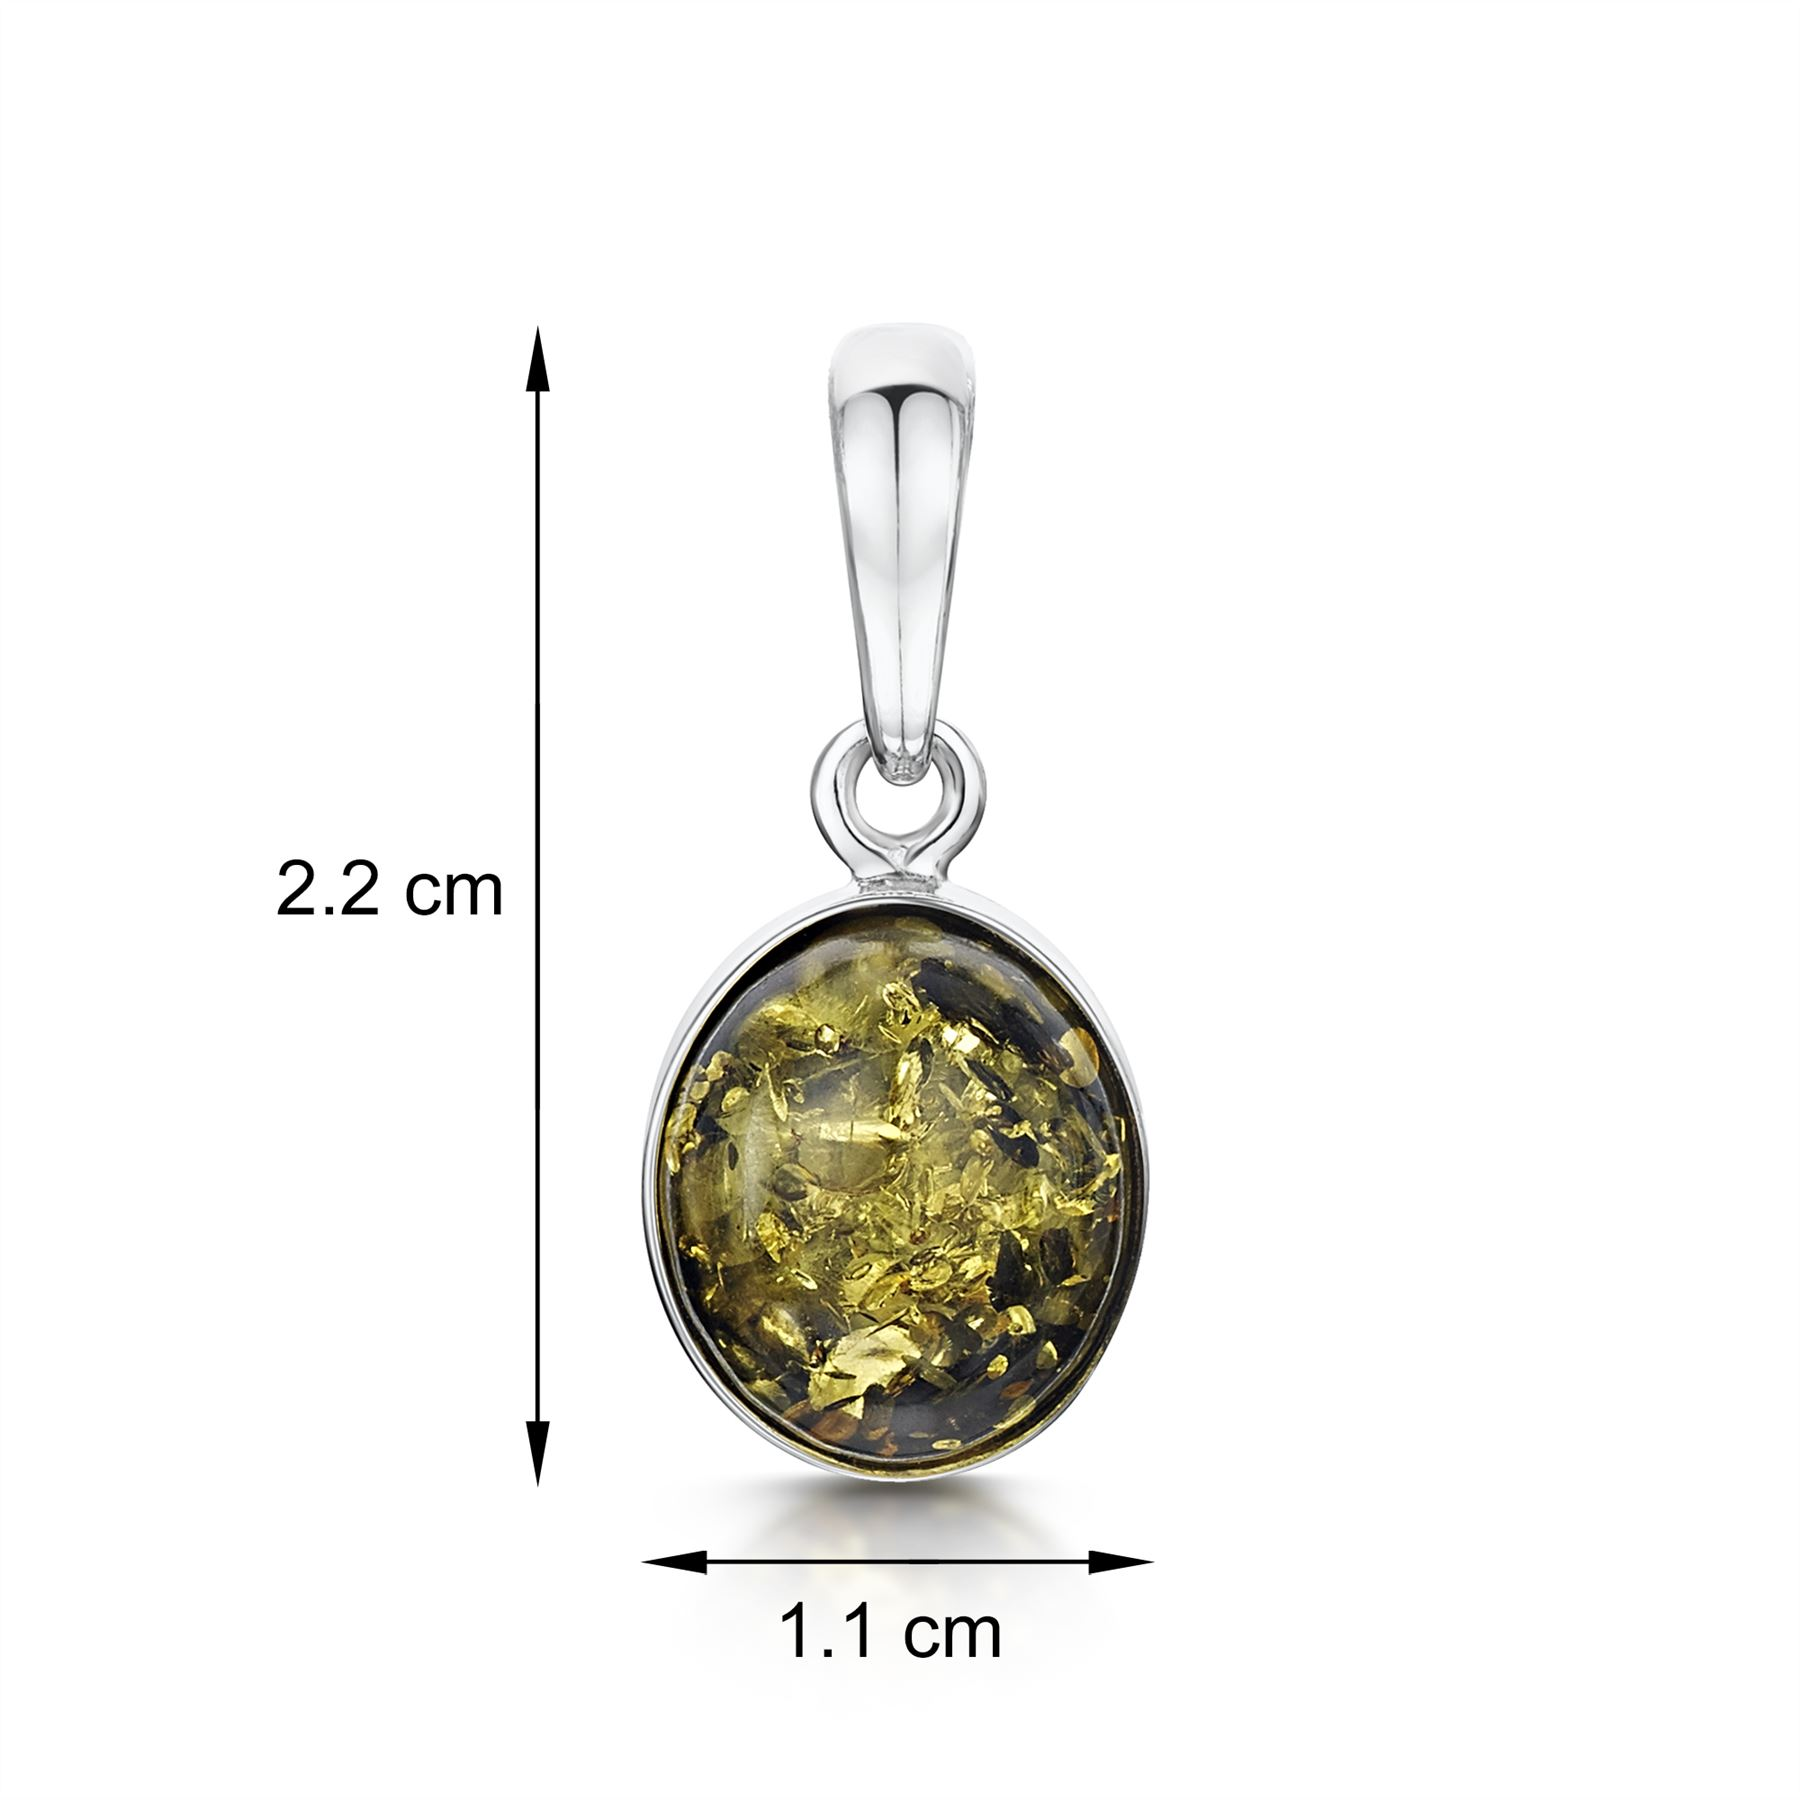 Amberta-Genuine-925-Sterling-Silver-Pendant-with-Natural-Baltic-Amber-Gemstone thumbnail 9